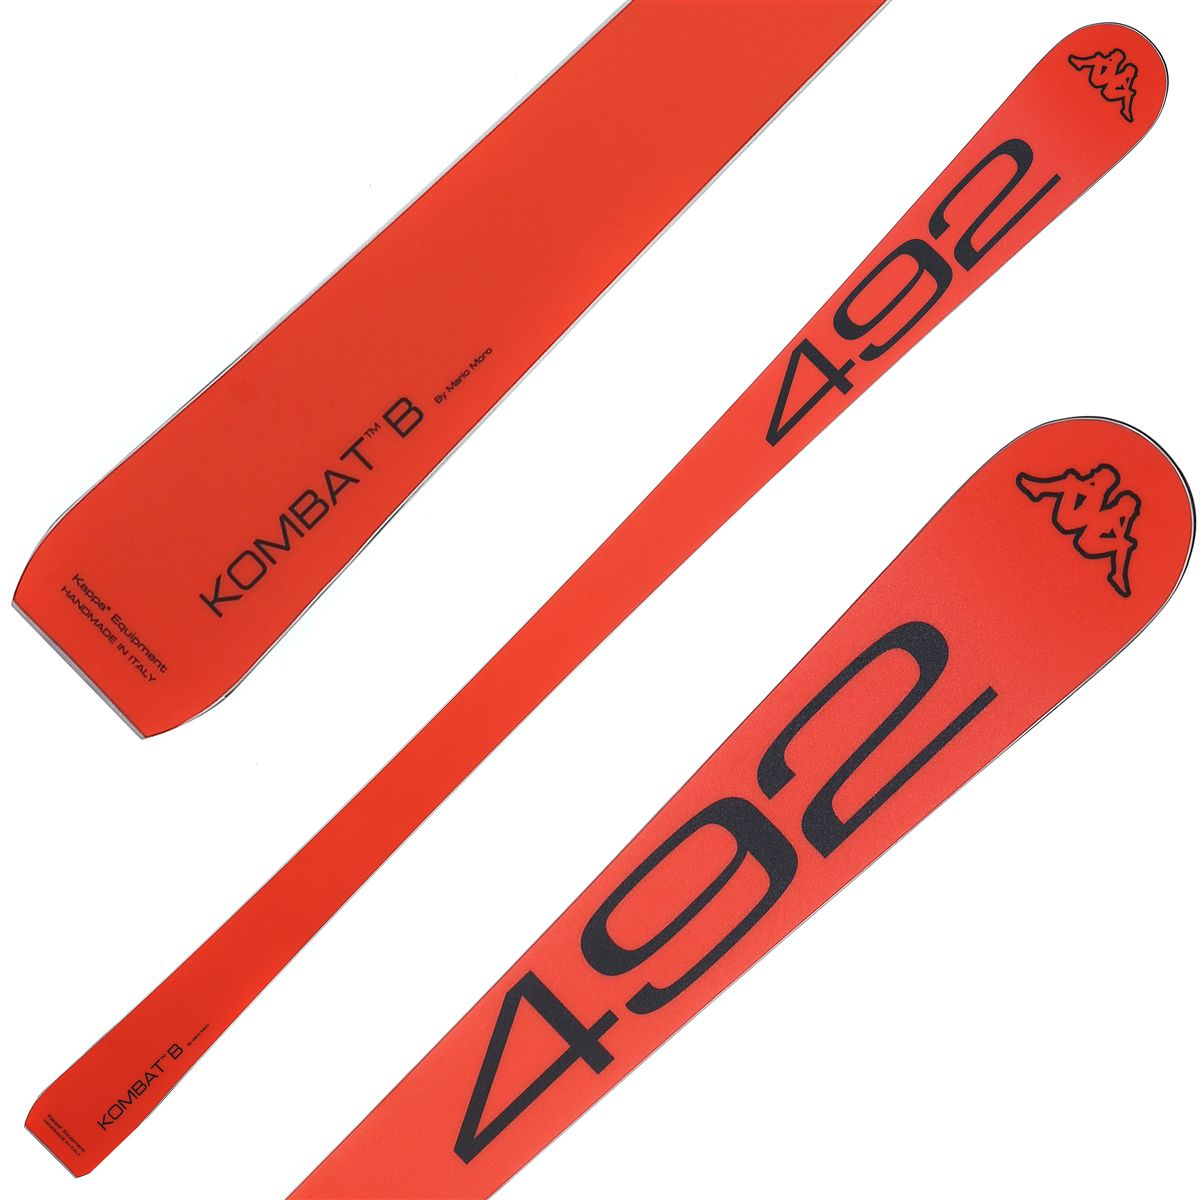 Kappa Big Carving Ski Ski sport Man Woman